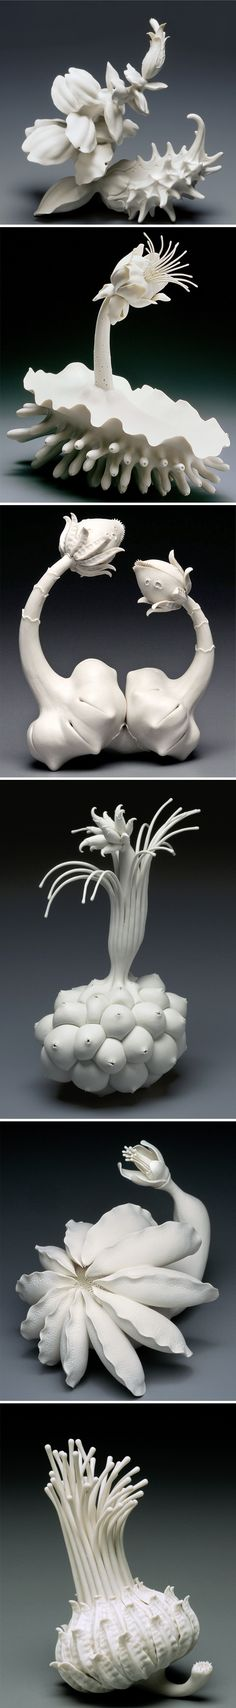 "Suess was still alive, I think he'd have a huge collection of these porcelain ""plants""! This the whimsical, wonderful work of New Jersey based artist Lindsay Feuer. Ah, nature through the beauti Organic Sculpture, Sculpture Clay, Sculptures, What Is Contemporary Art, Organic Art, Artwork Images, Paperclay, Ceramic Flowers, Polymer Clay Art"